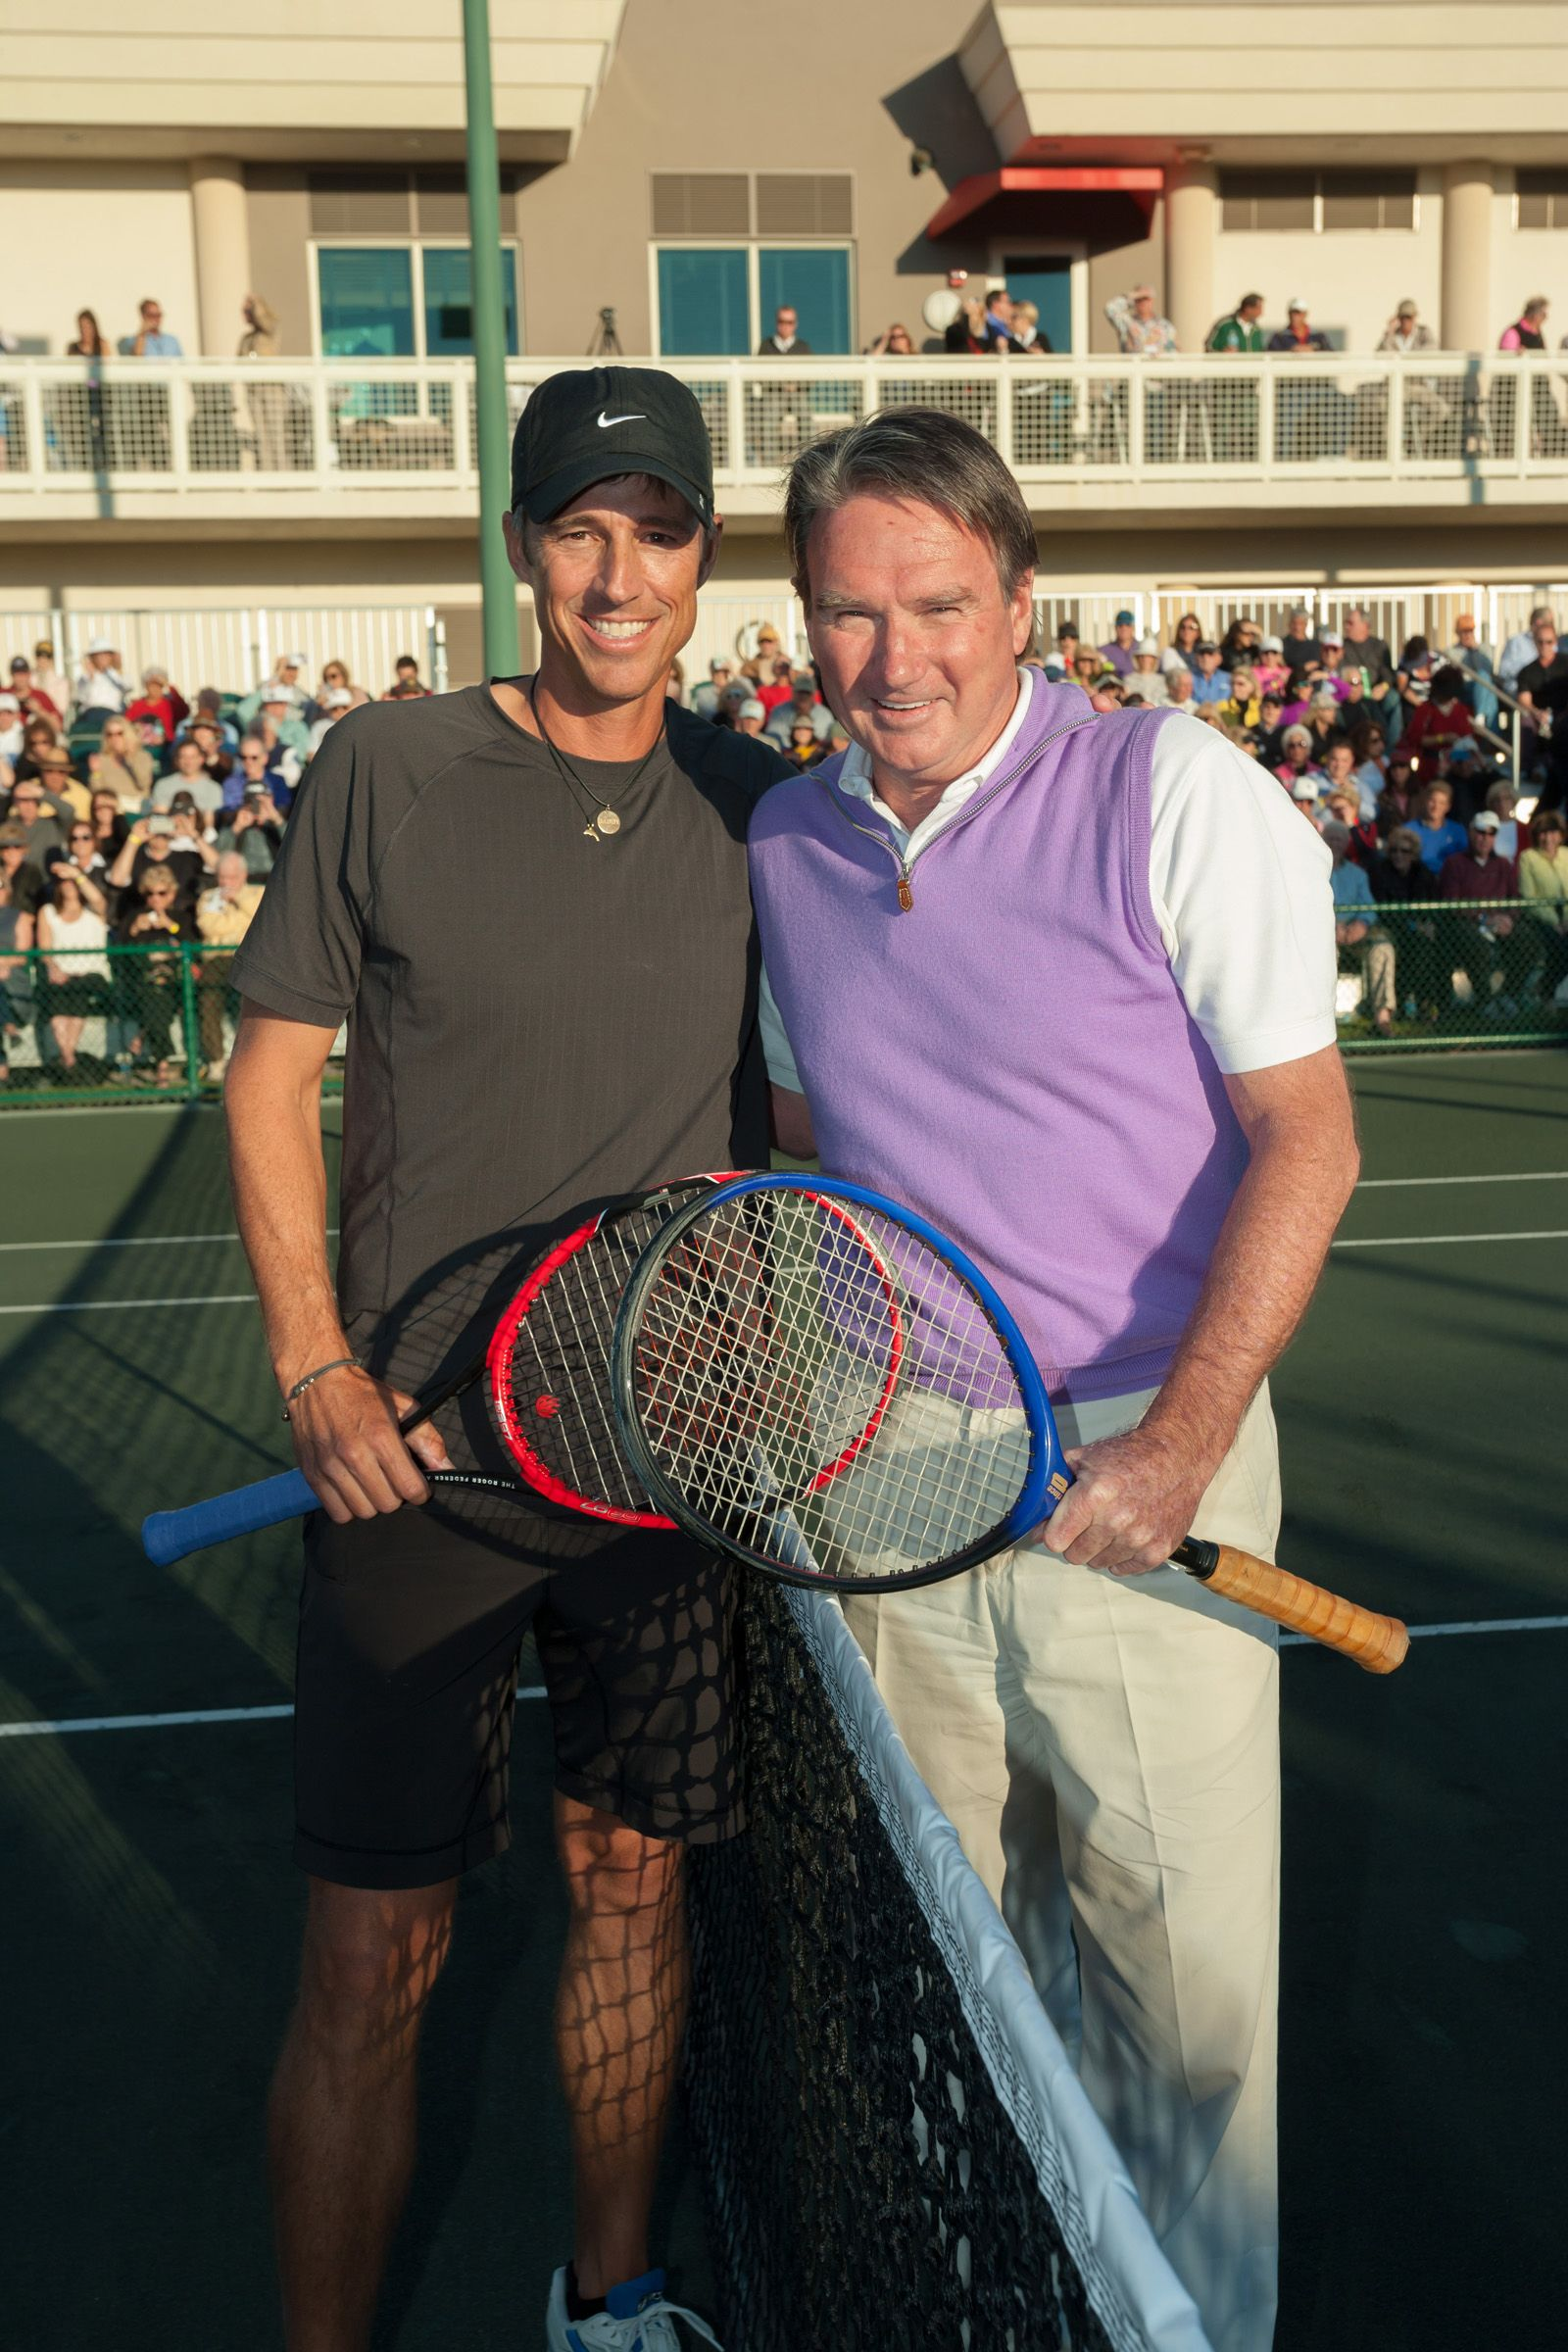 Aaron Krickstein and Jimmy Connors Rematch 24 Years after the 1991